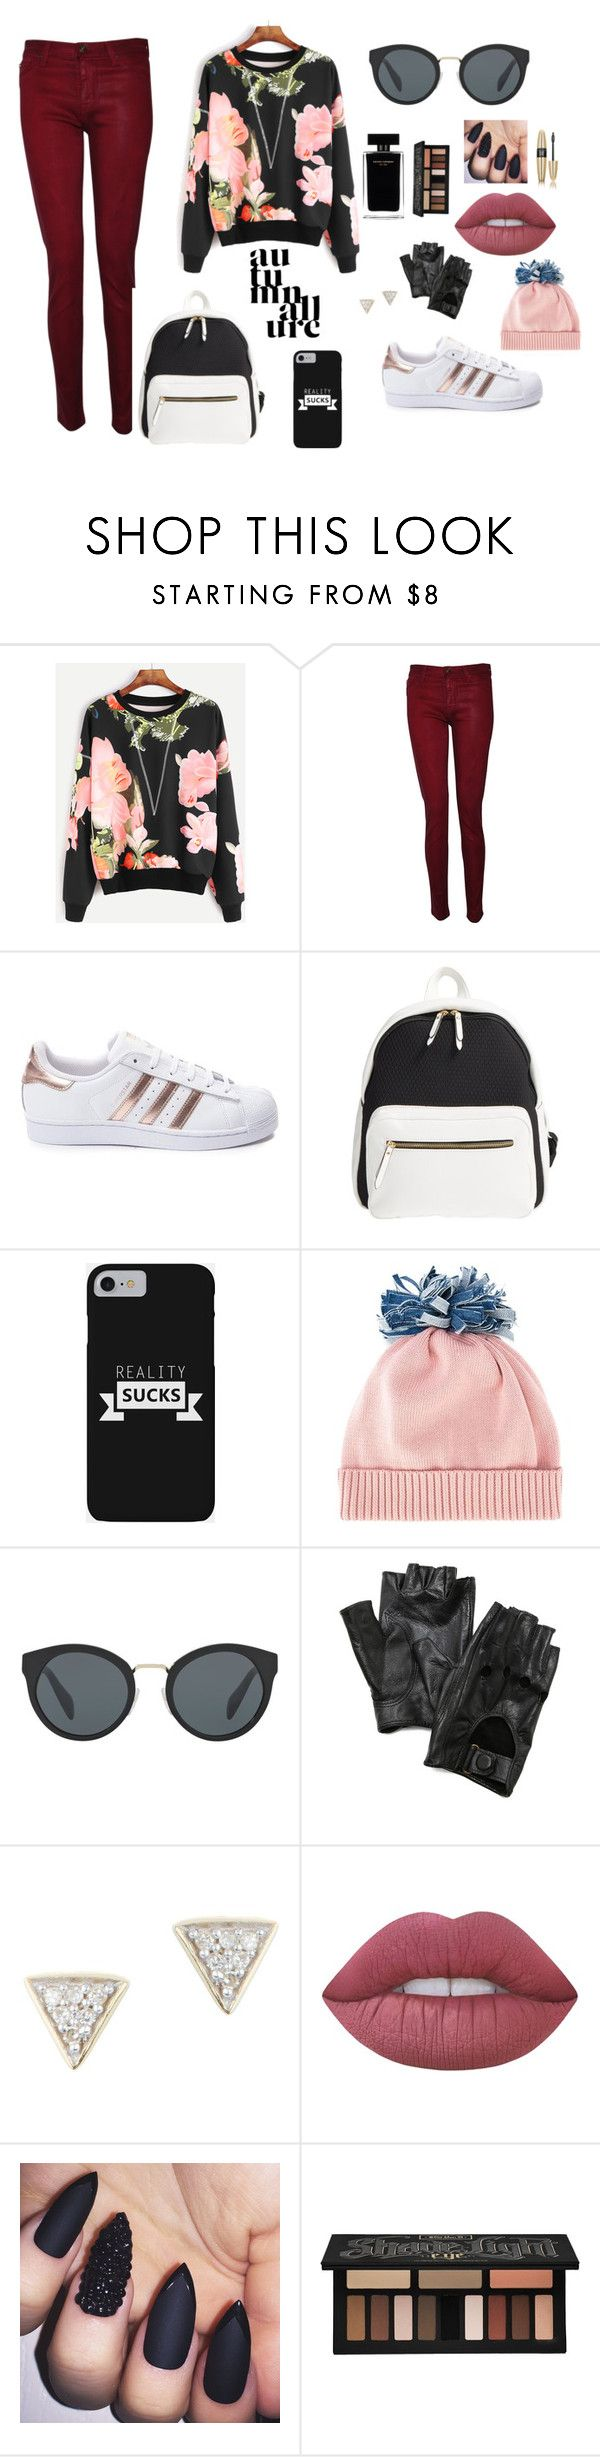 """""""University ."""" by red-cristal ❤ liked on Polyvore featuring Hudson, adidas, Poverty Flats, Federica Moretti, Prada, Carolina Amato, Adina Reyter, Lime Crime, Narciso Rodriguez and Kat Von D"""